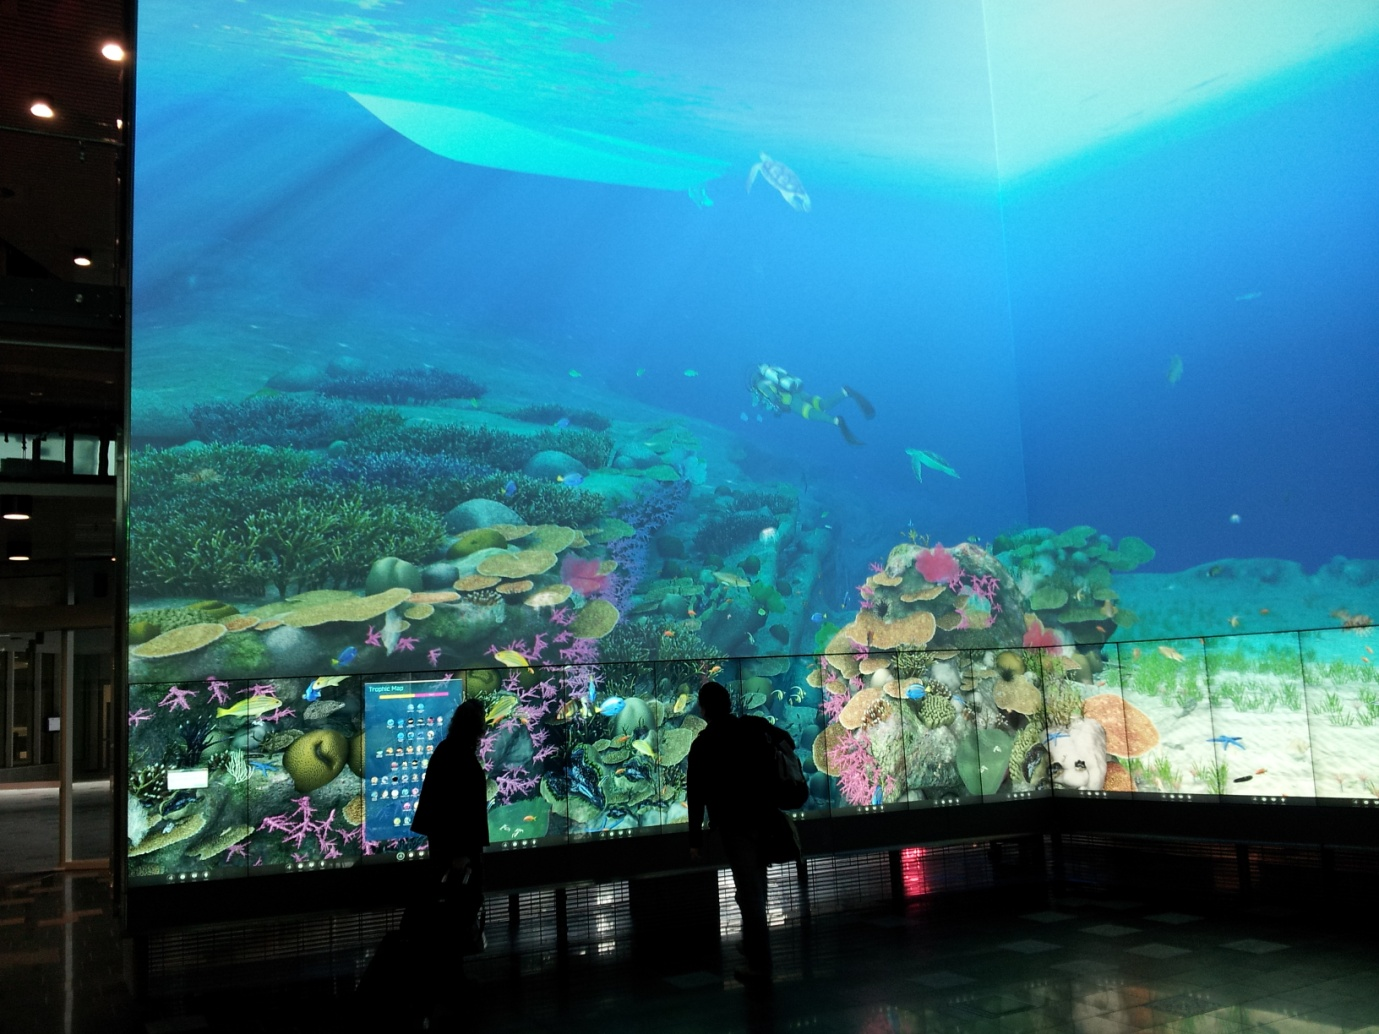 Helen and Andrew exploring virtual Great Barrier Reef in the Cube